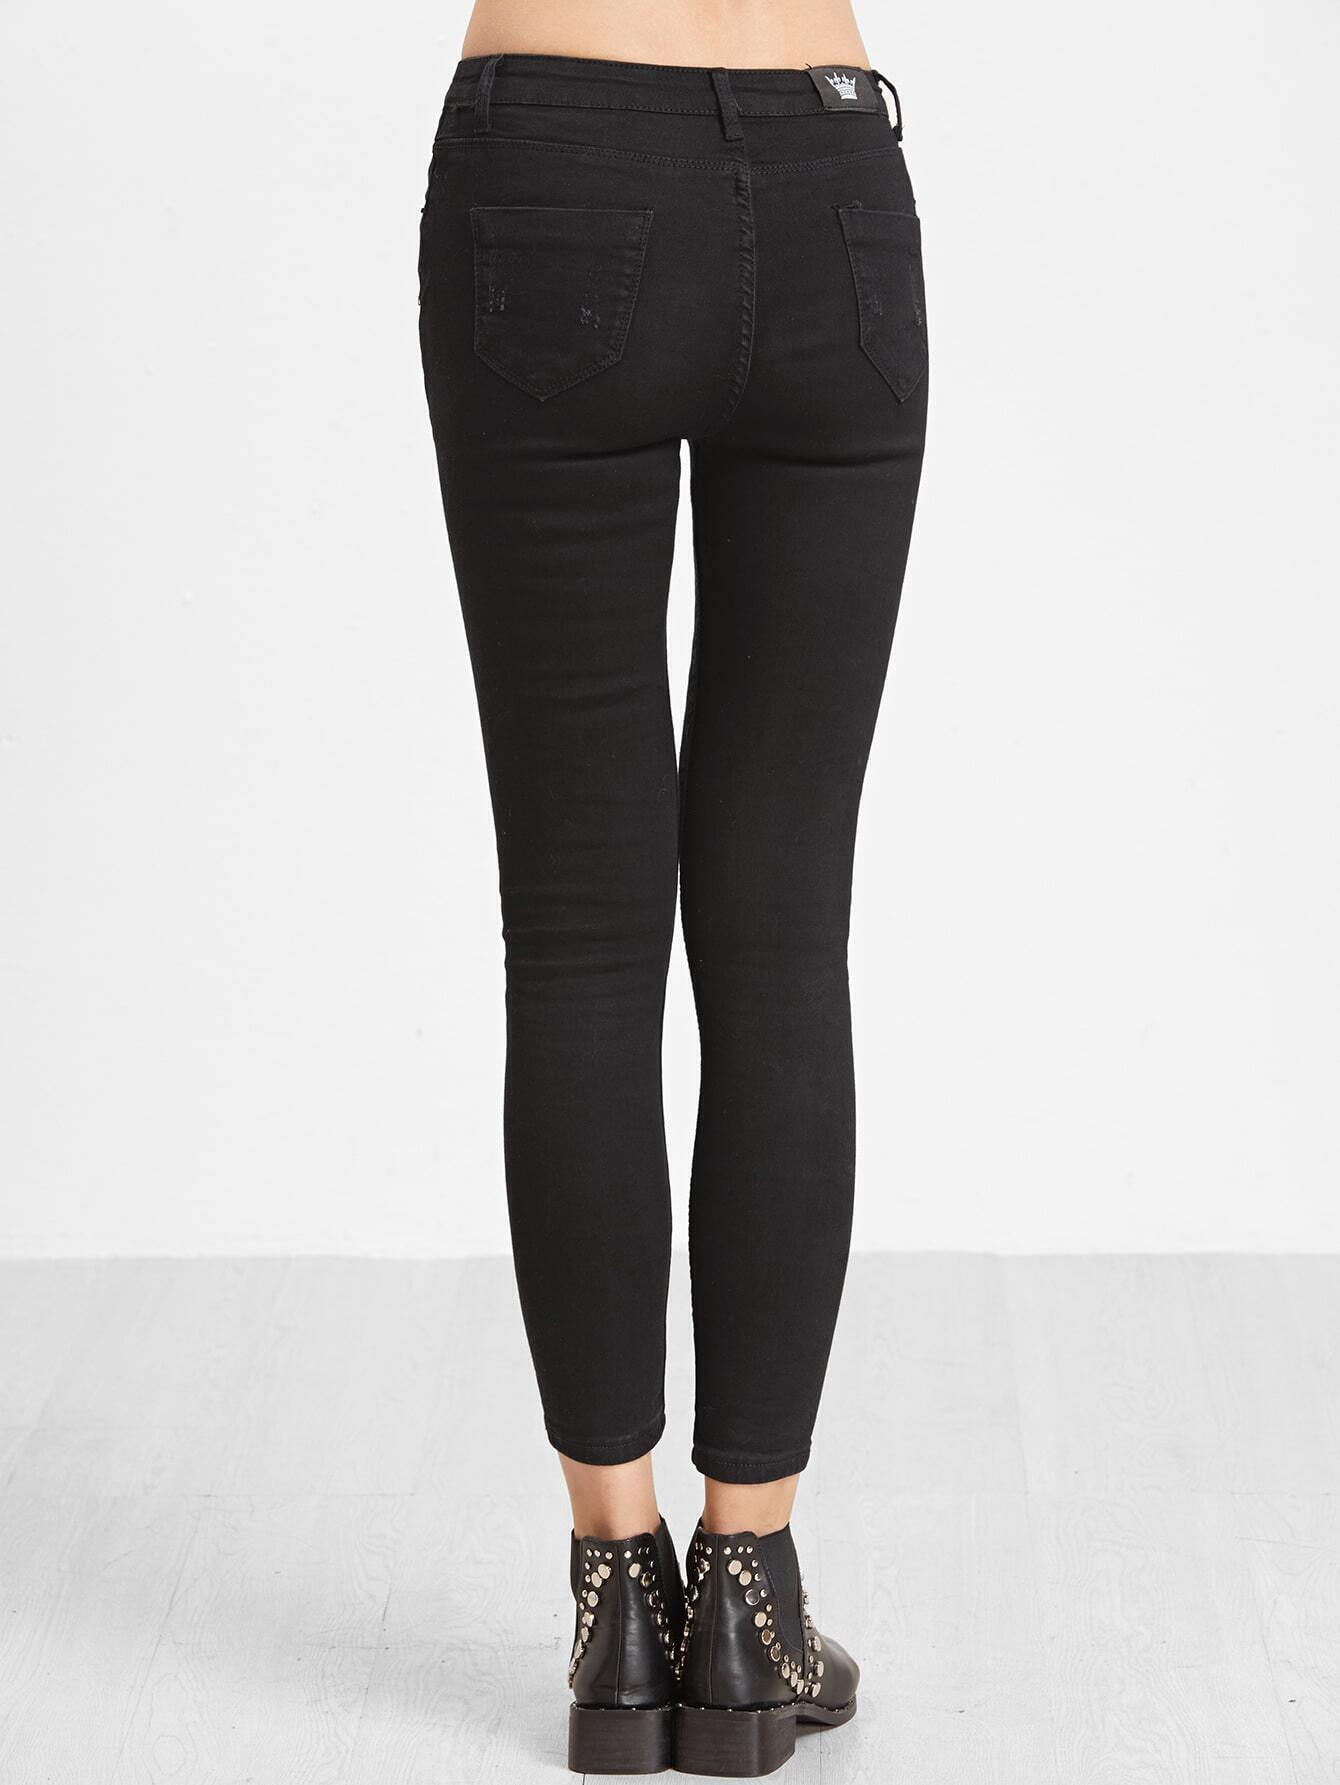 Find great deals on eBay for womens skinny ankle jeans. Shop with confidence.